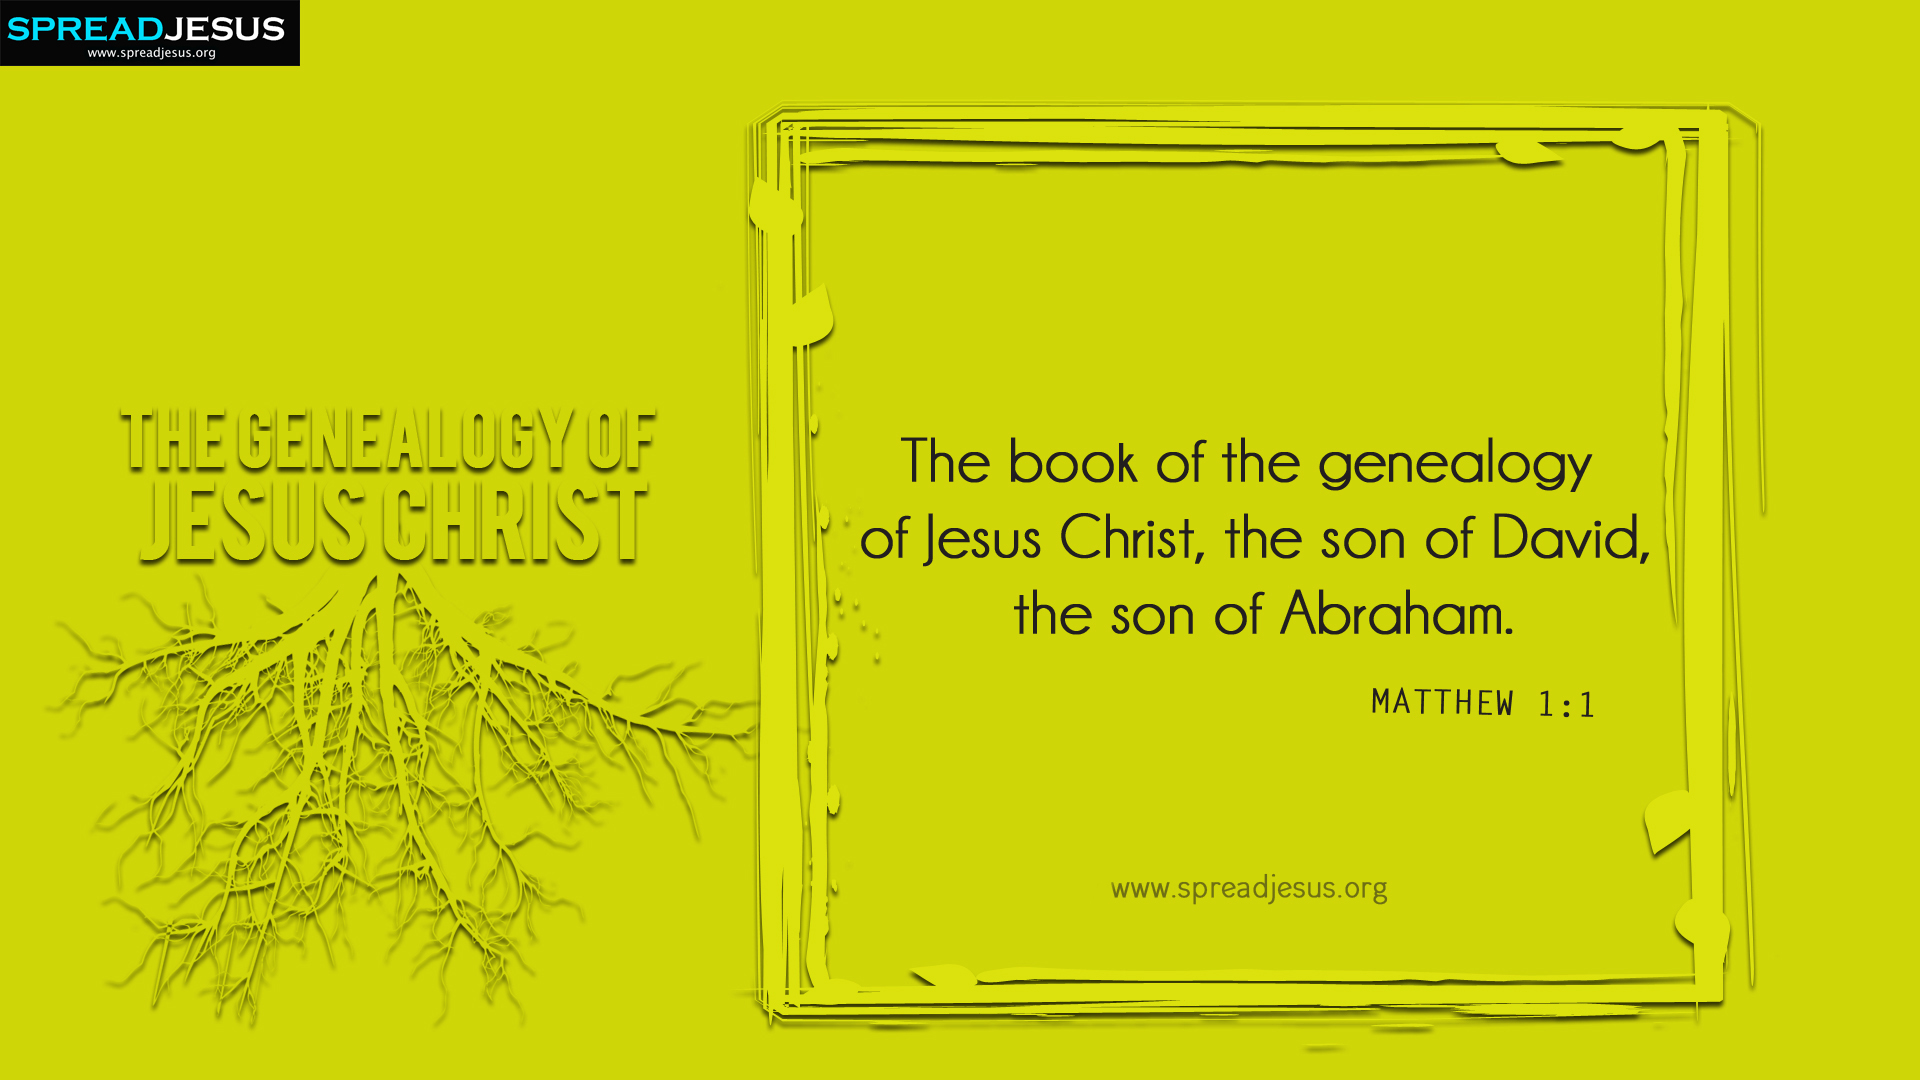 The Genealogy of Jesus Christ Matthew 1:1 HD-Wallpapers